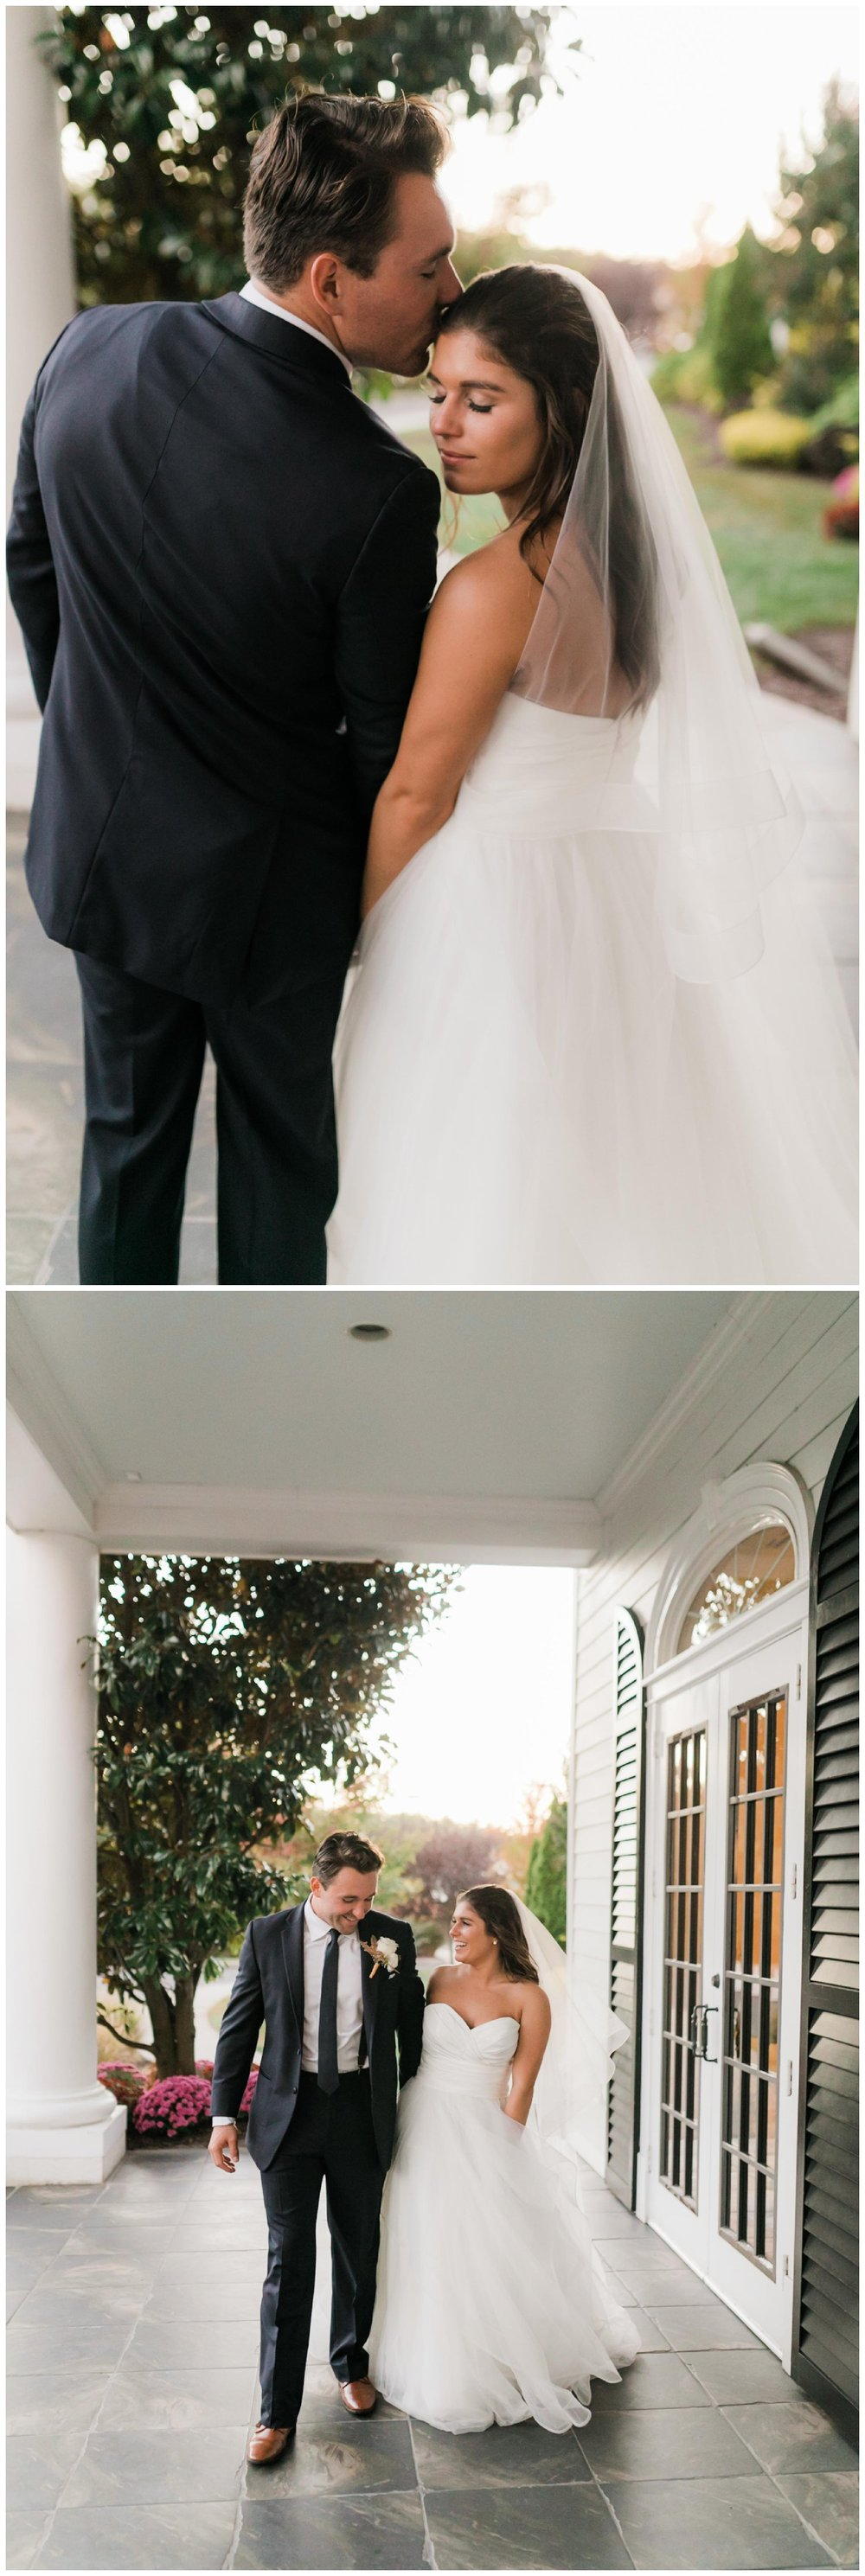 JenandEd_NewJerseyWedding_CarriageHouse_Galloway_NJ__SouthJersey_Wedding_Photographer_MagdalenaStudios_0272.jpg